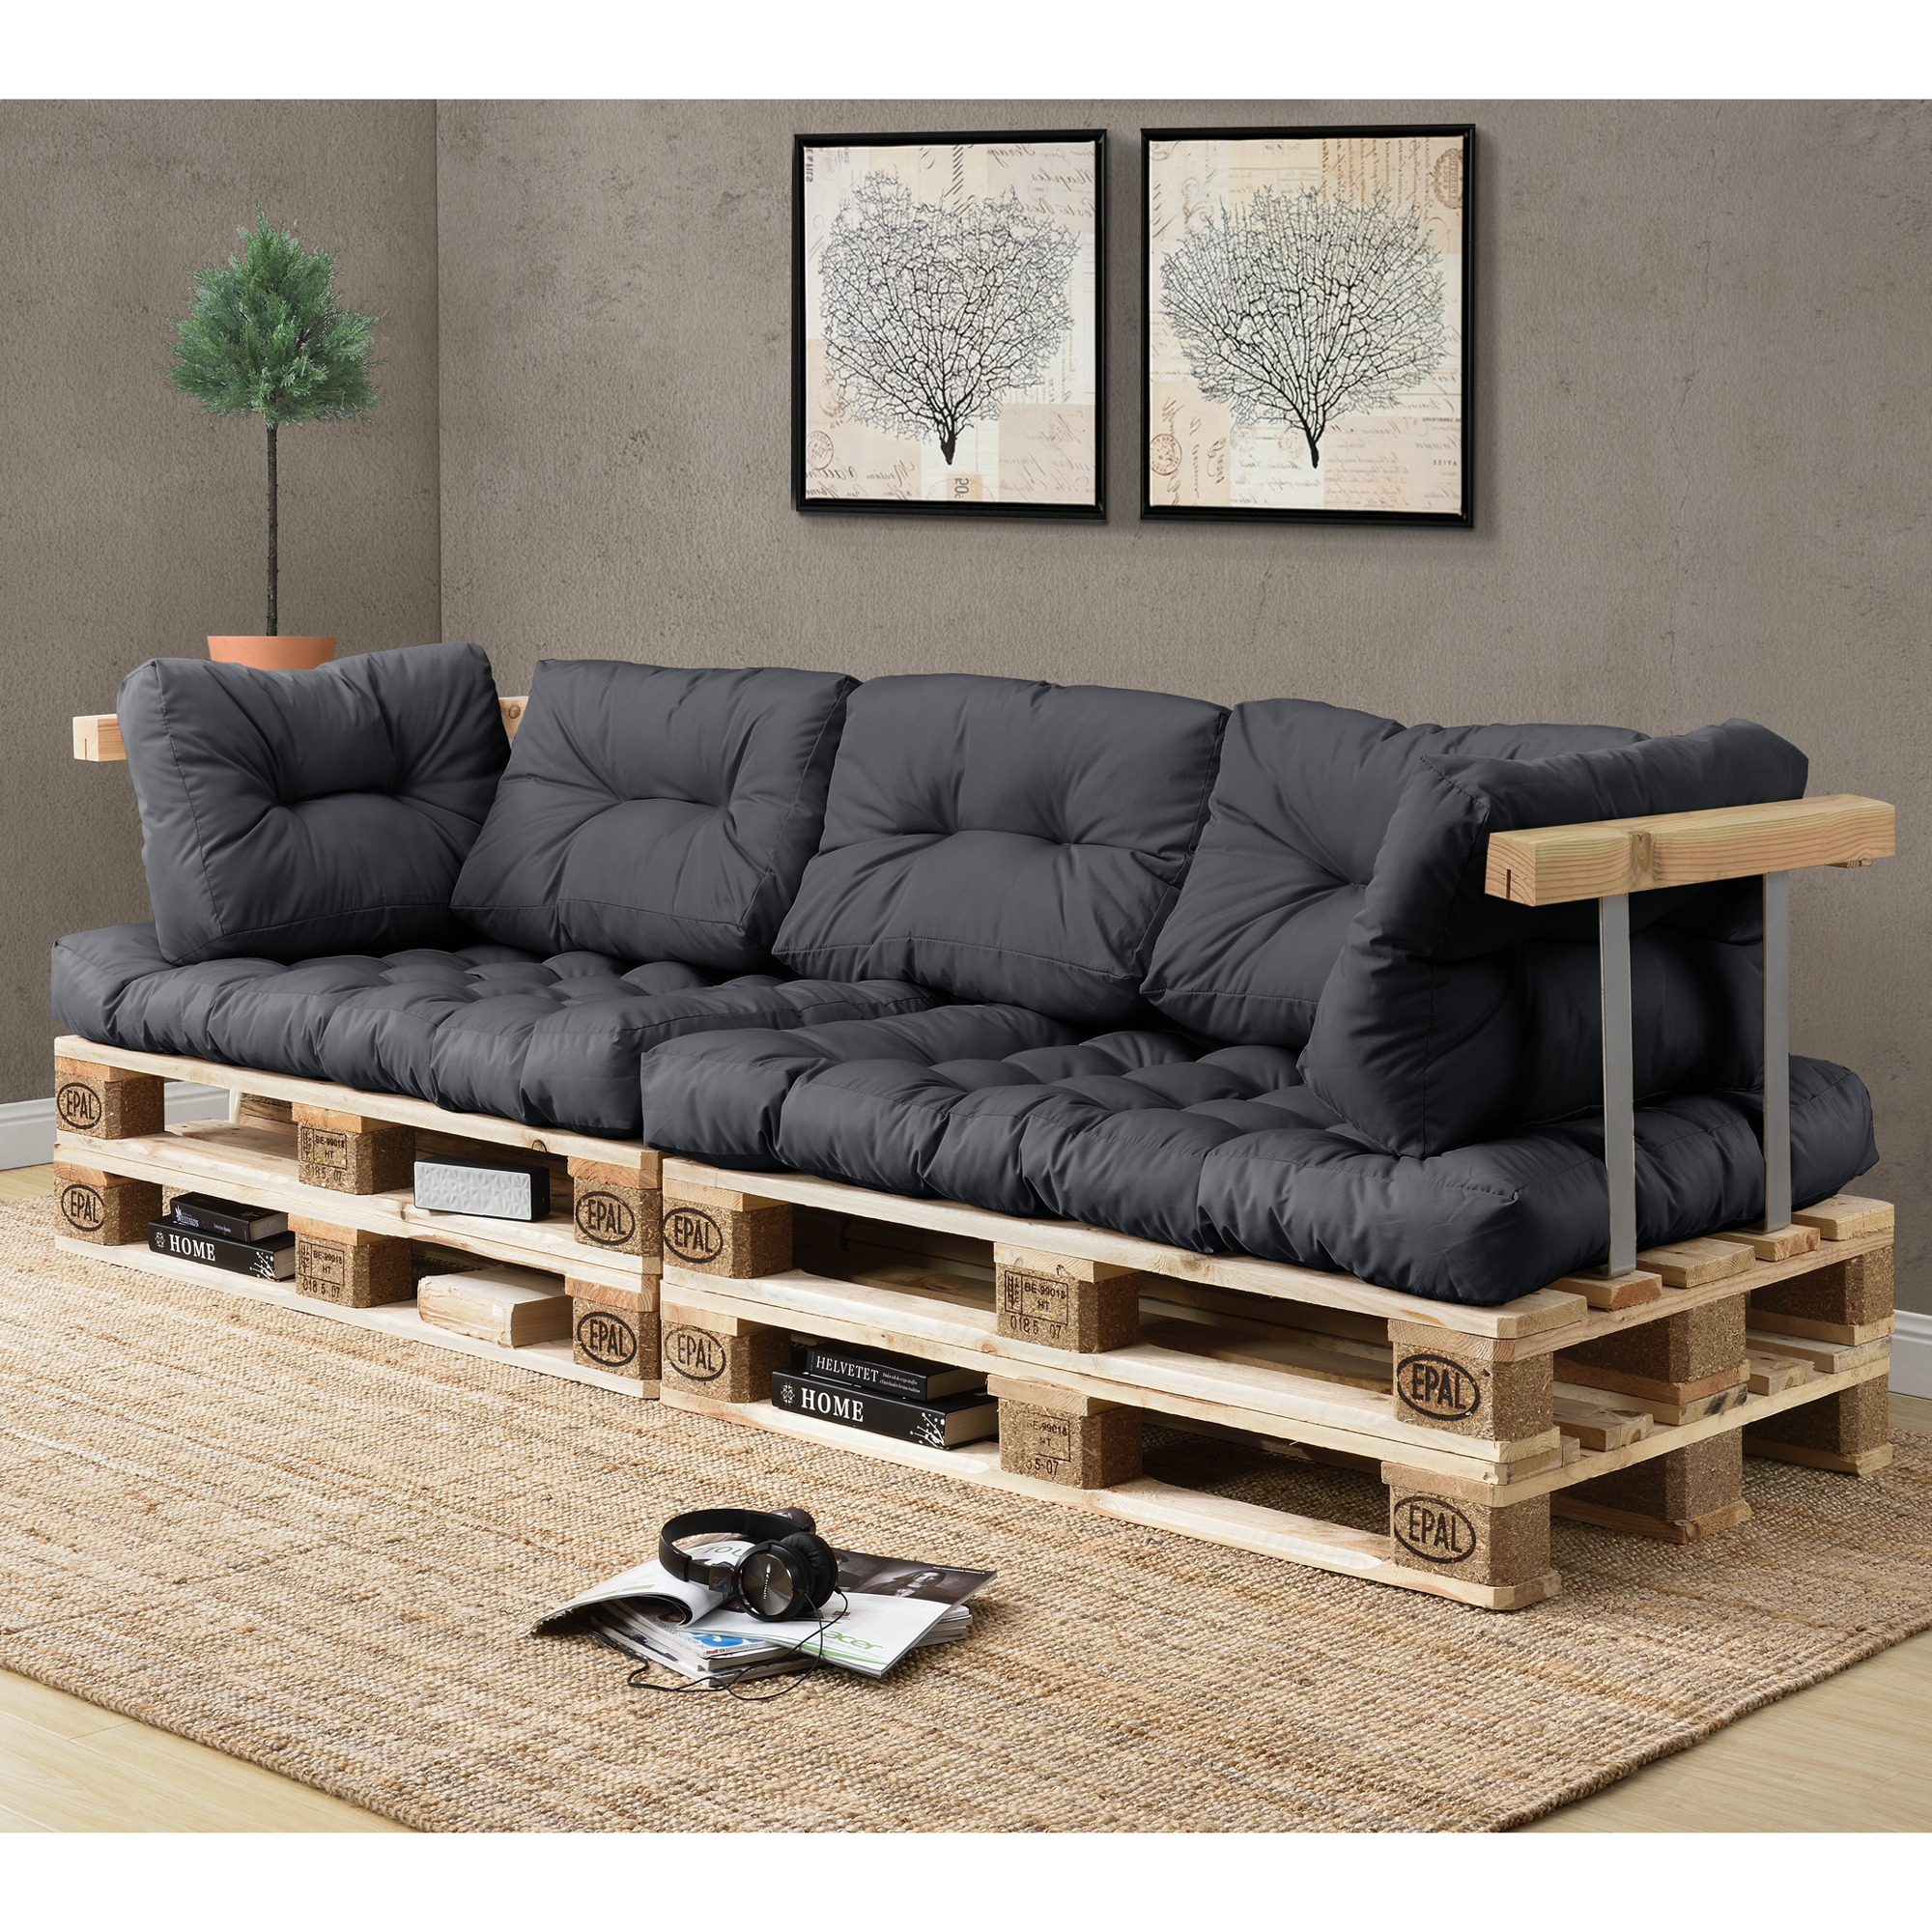 pallet cushions in outdoor pallets cushion sofa padding seat cushion ebay. Black Bedroom Furniture Sets. Home Design Ideas